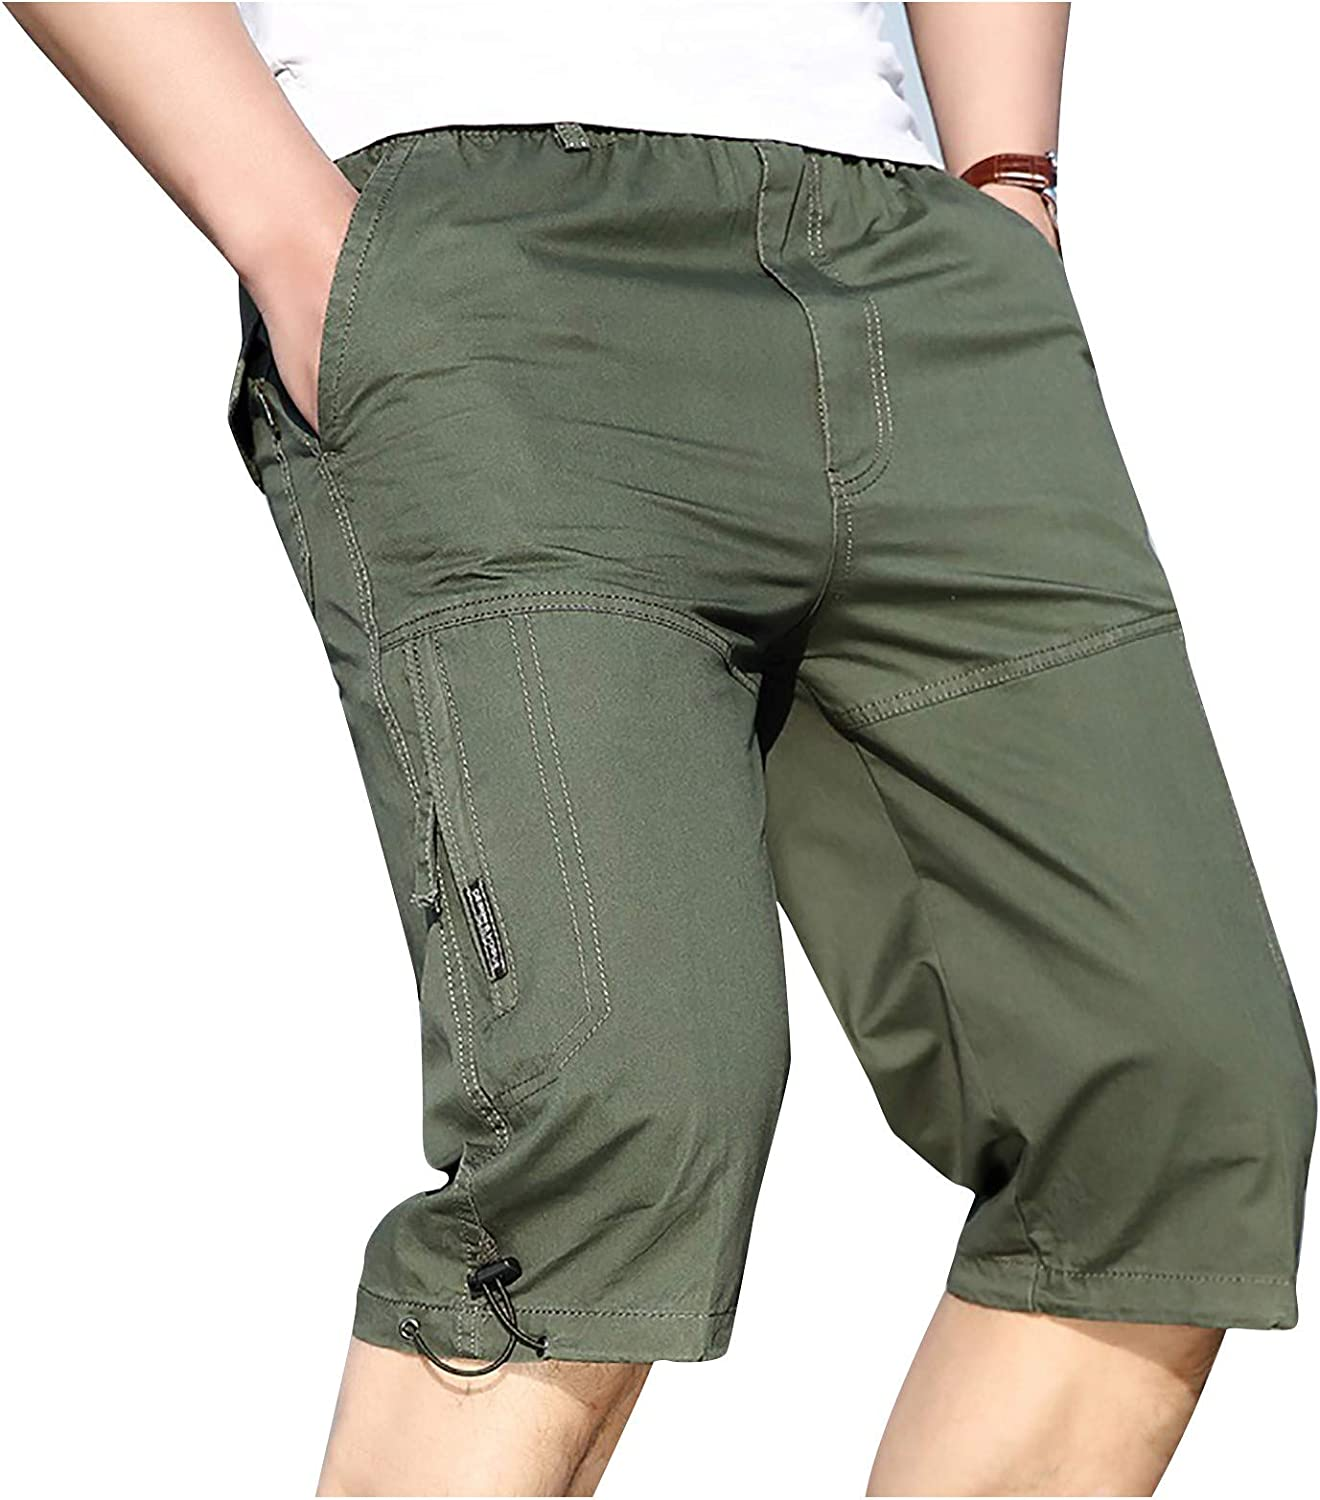 Navyoom Mens Shorts Casual Running Shorts Solid Color Knee Length Trousers Summer Loose Short Pants with Five Pockets